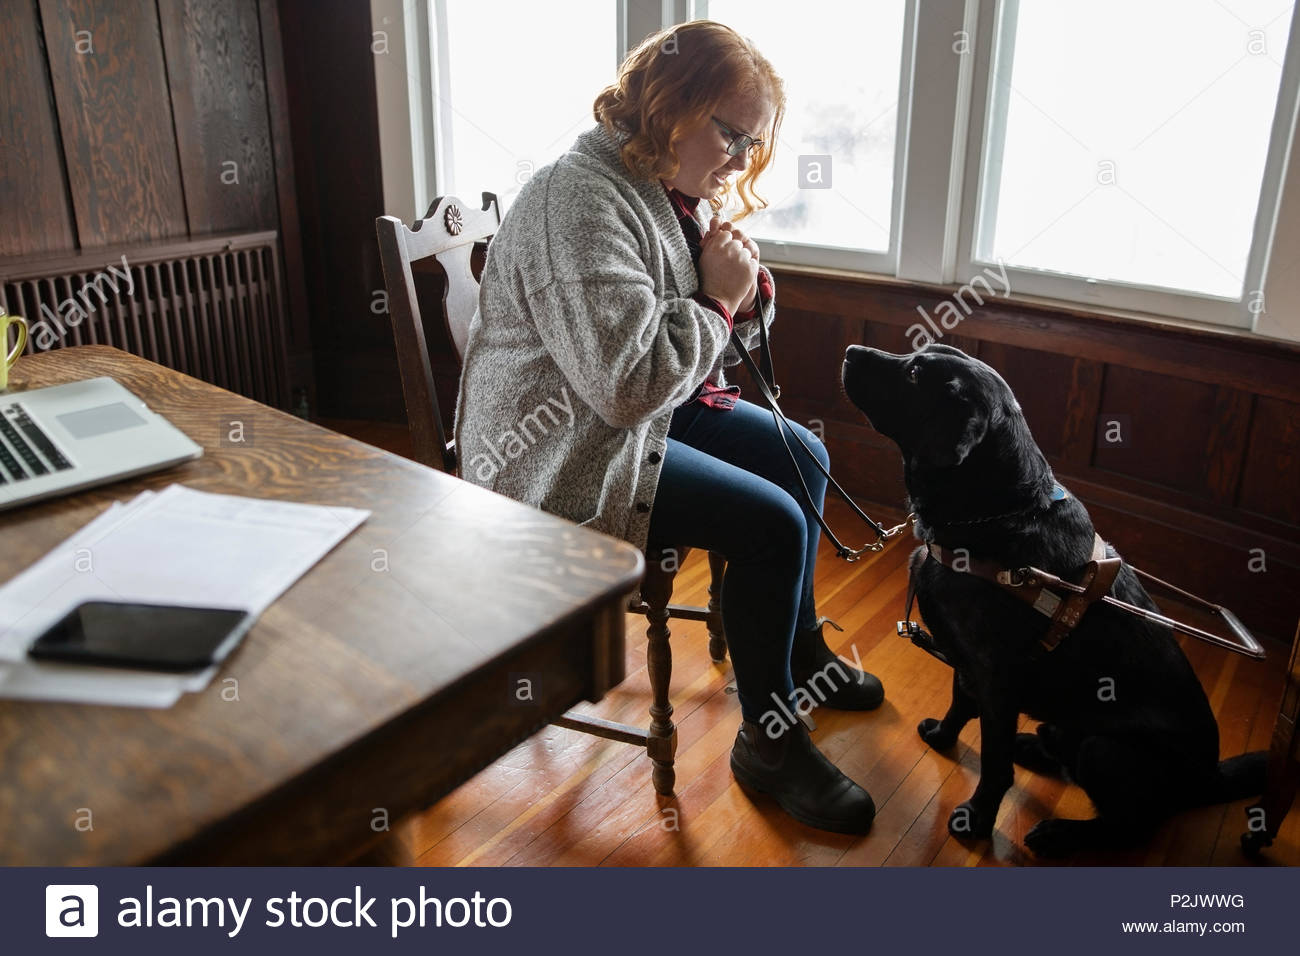 Visually impaired woman with seeing eye dog - Stock Image